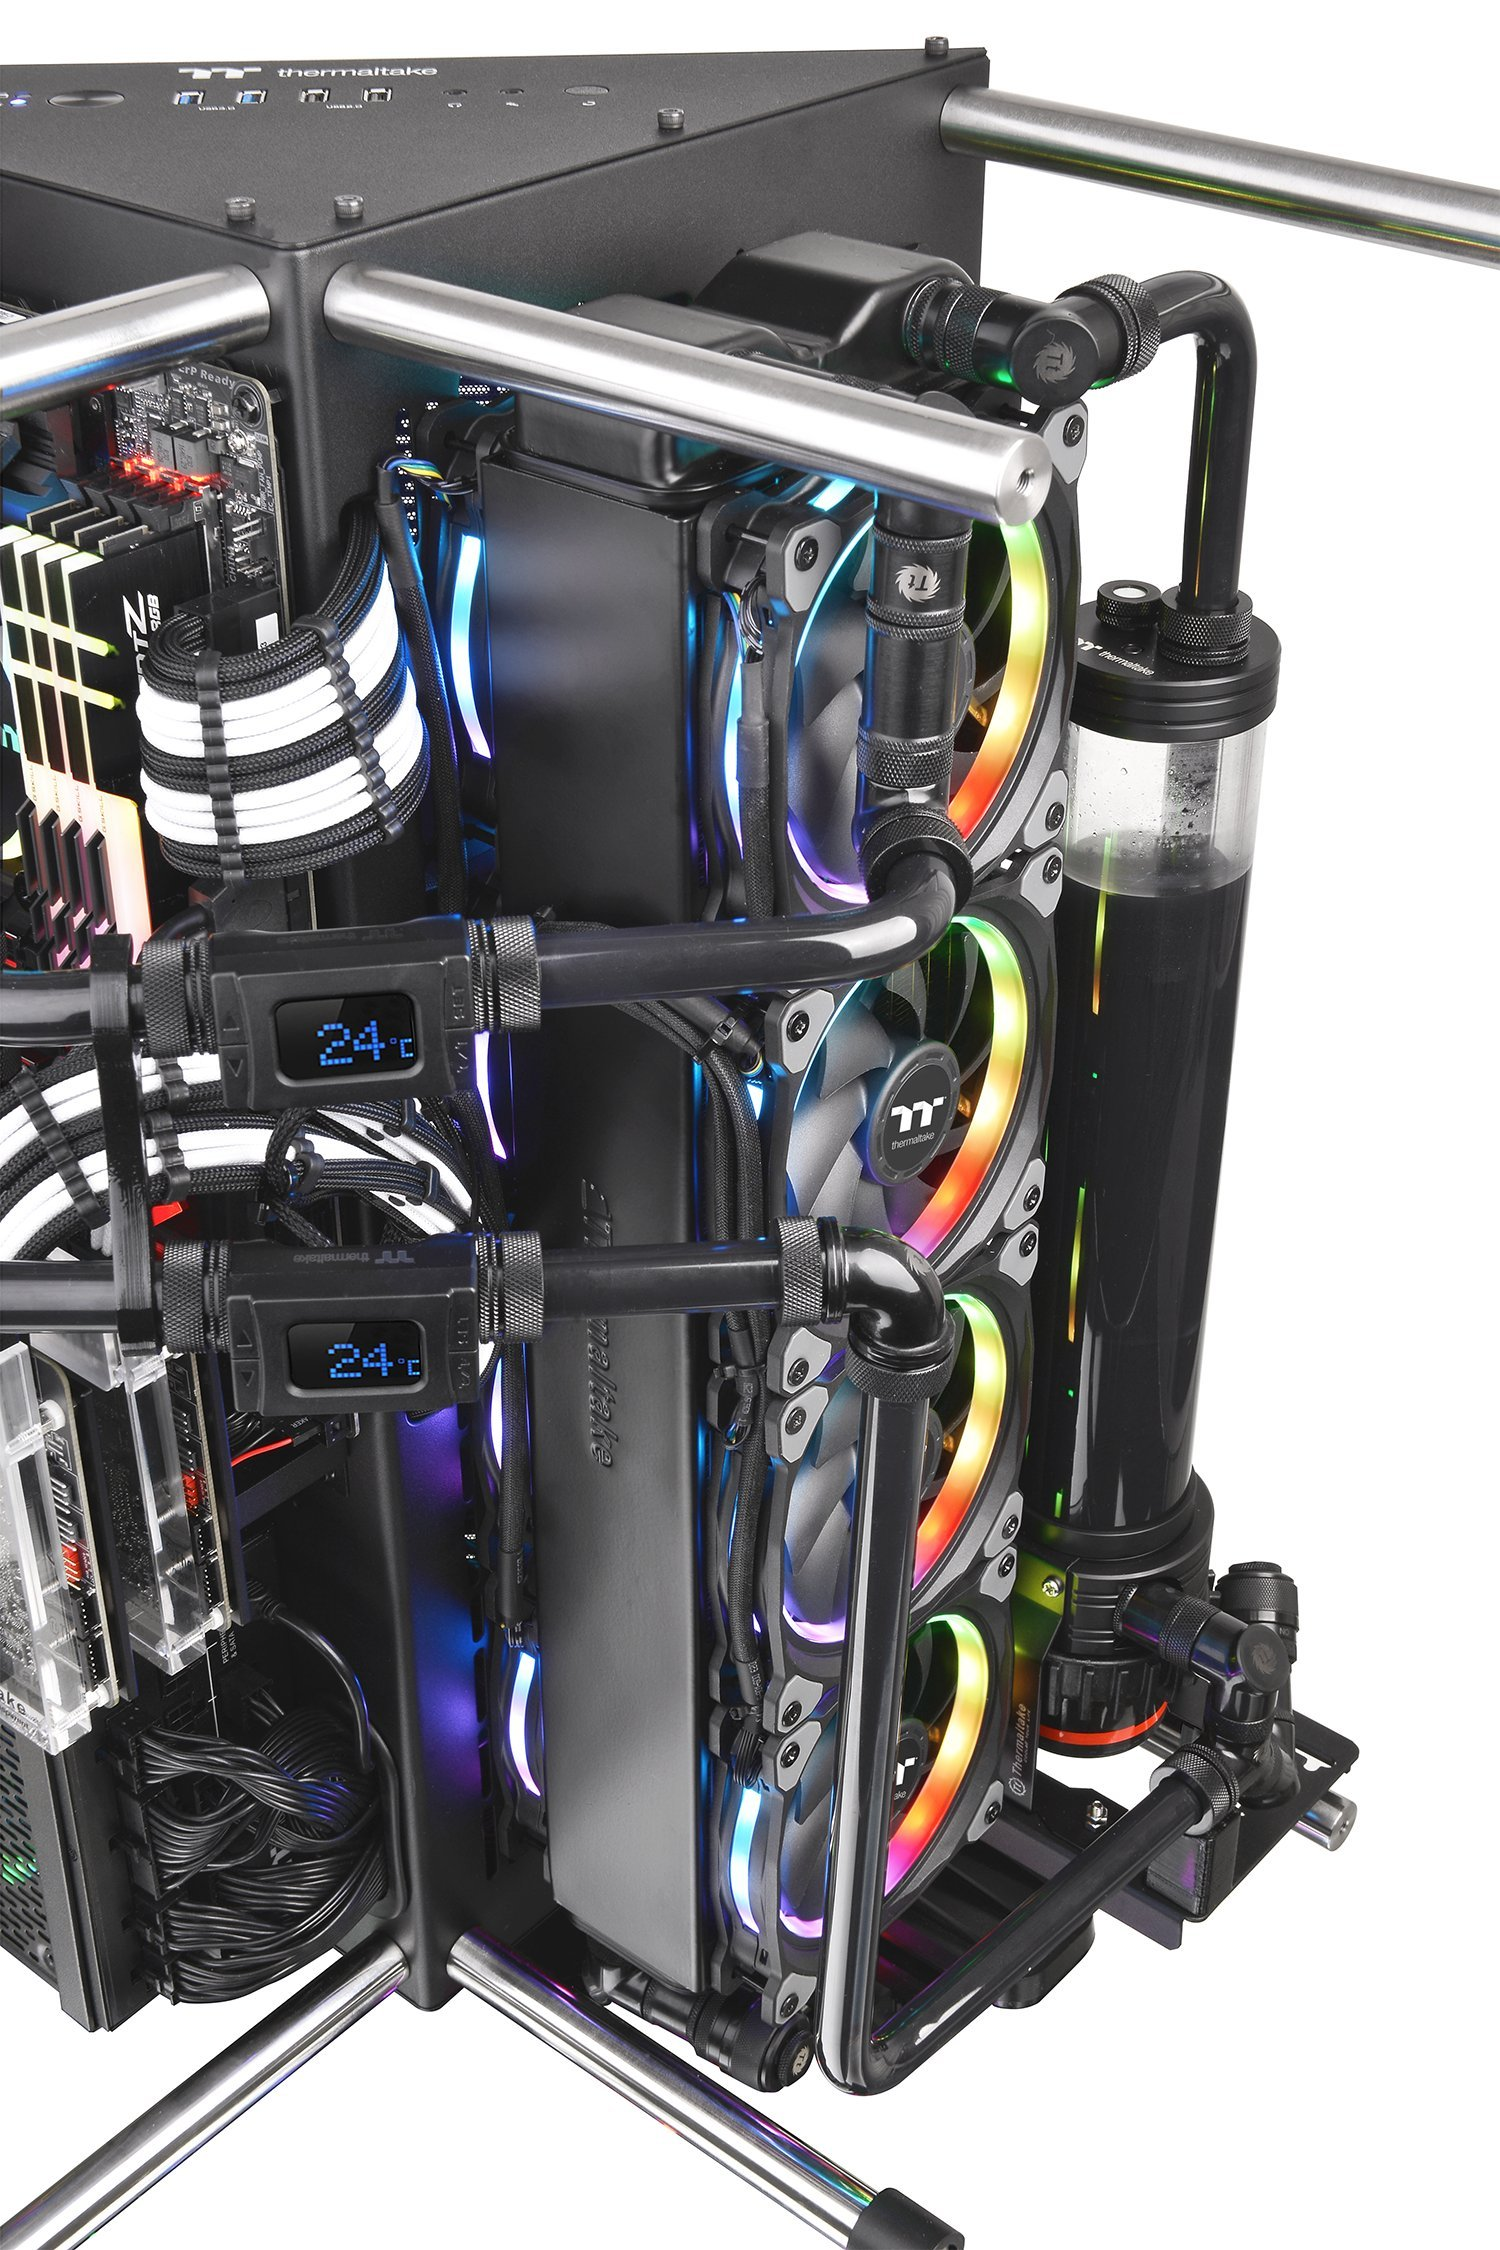 Thermaltake Core P90 Tempered Glass Black Atx Mid Tower Open Frame Us 18900 From Amazon